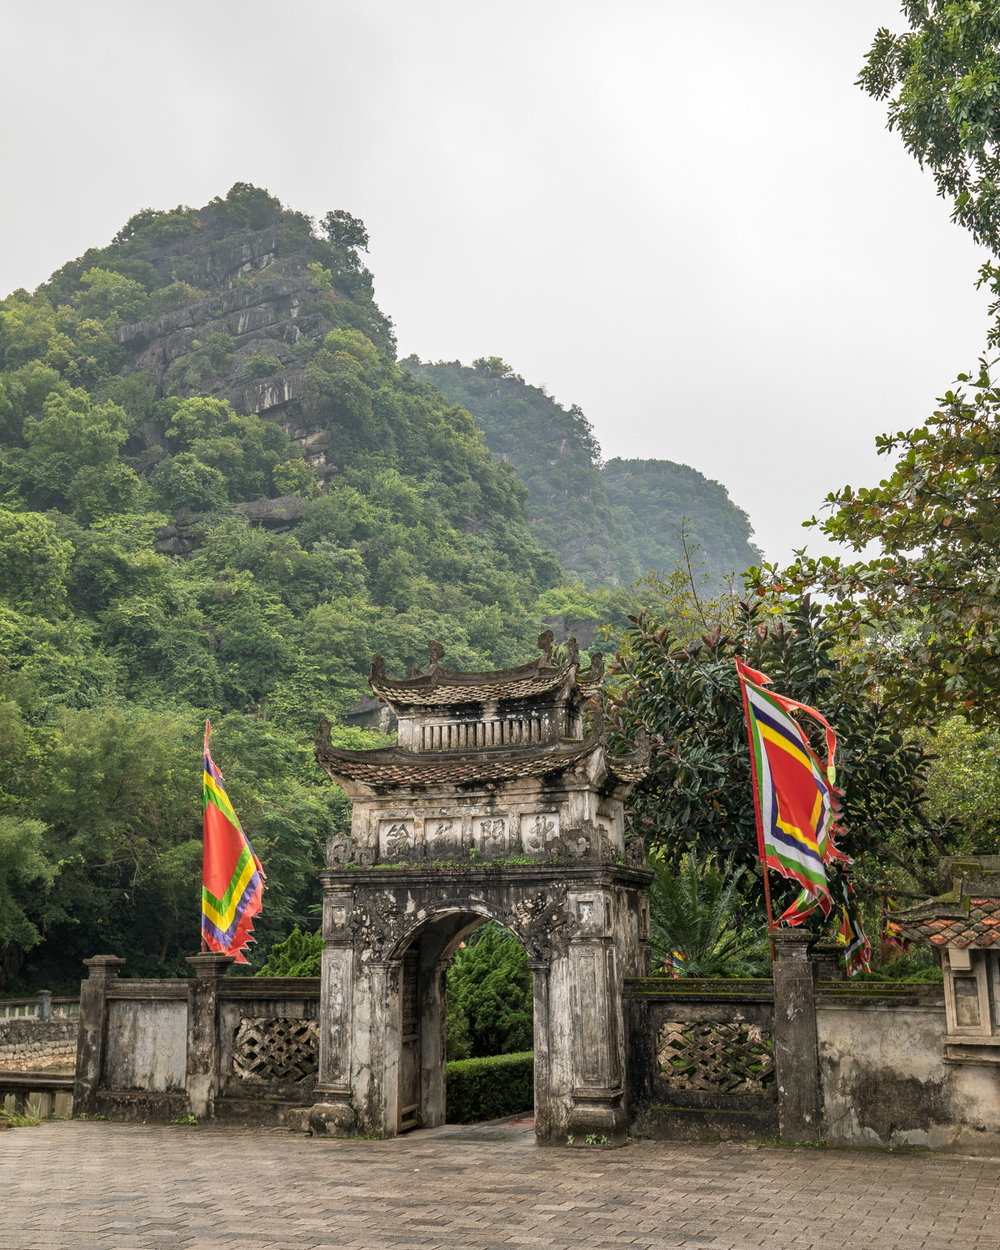 The ancient capital of Vietnam - Hoa Lu, Ninh Binh